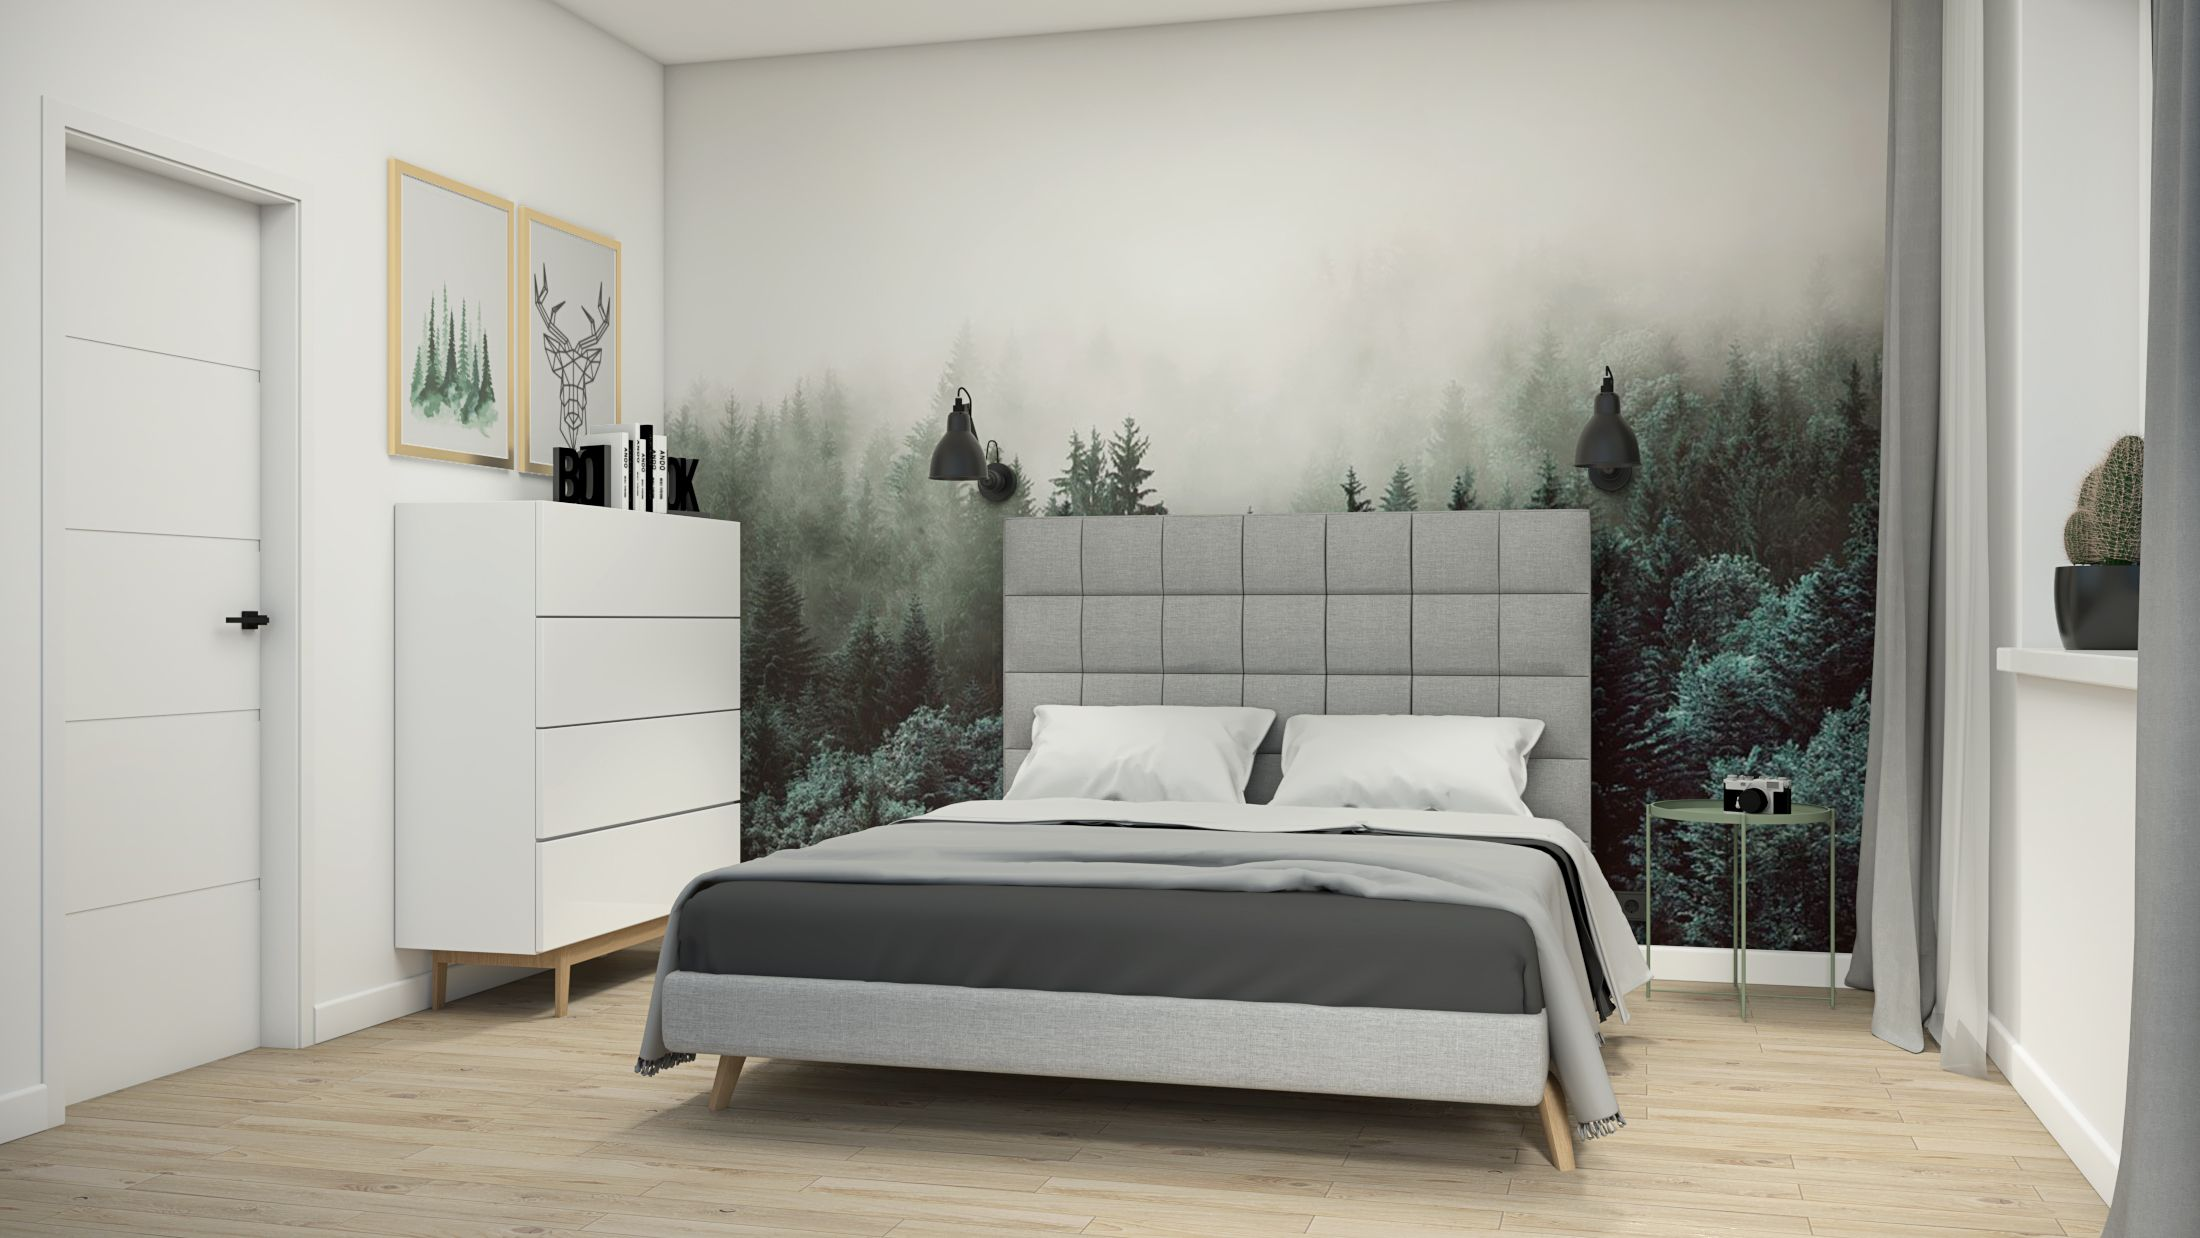 #Bedroom #Interiordesign